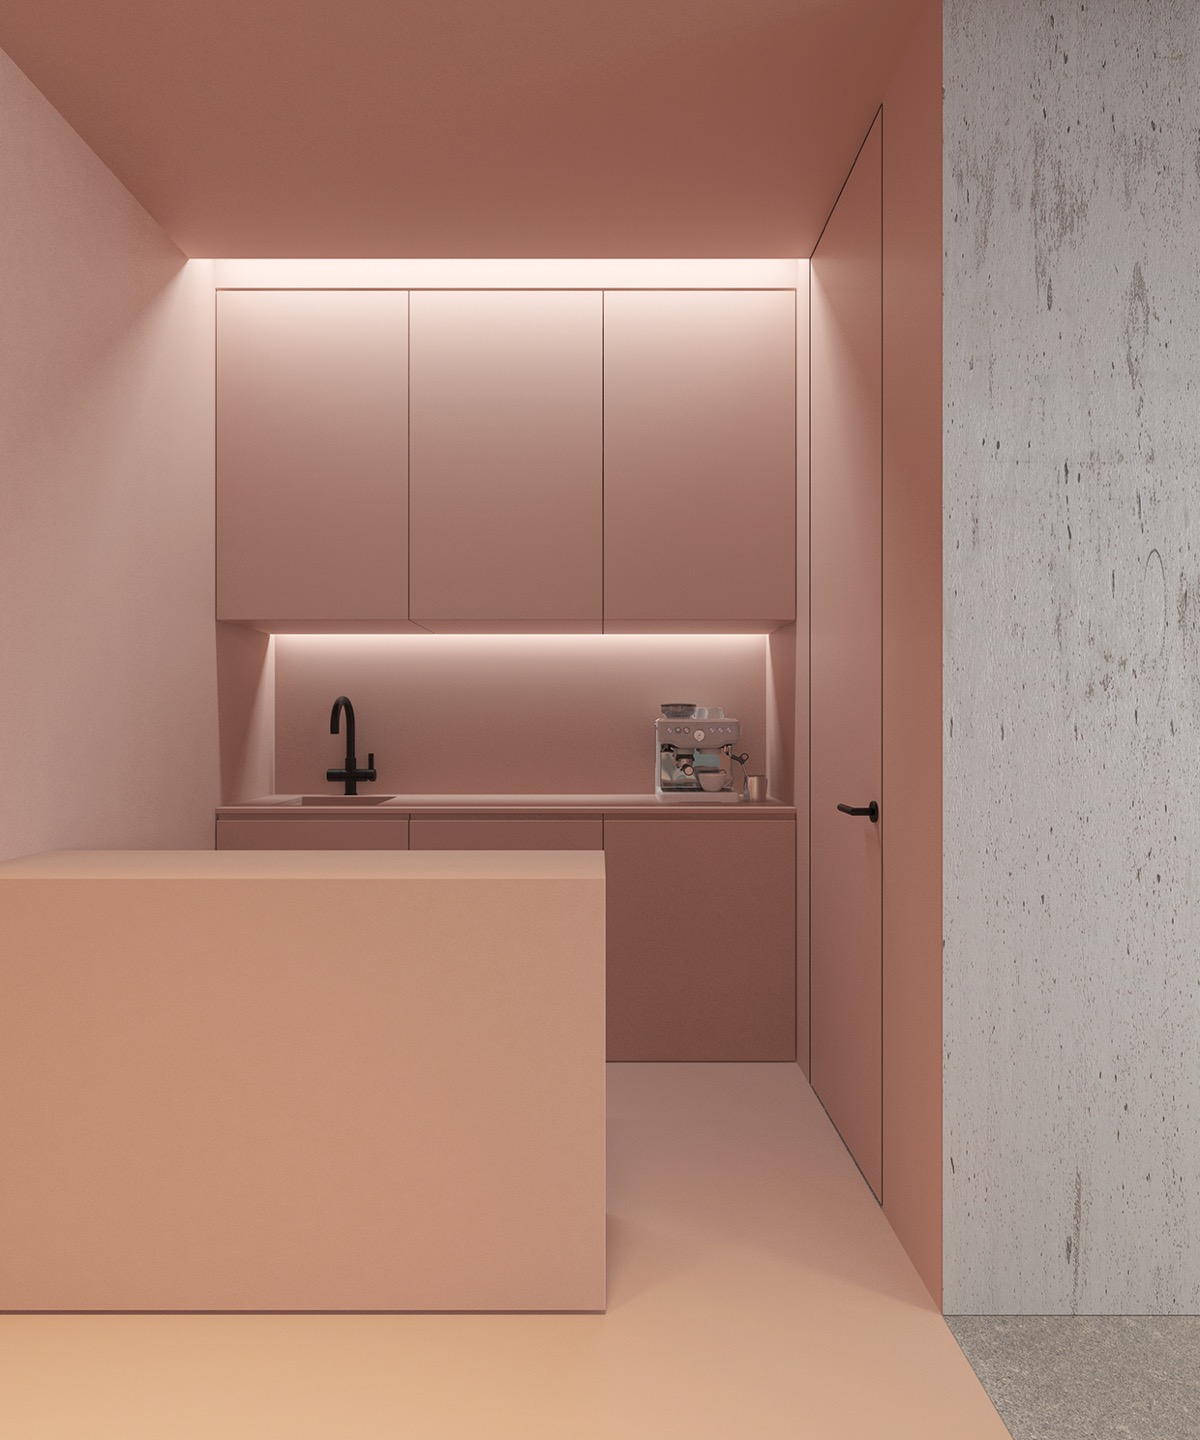 51 Inspirational Pink Kitchens With Tips & Accessories To Help You Design Yours images 2